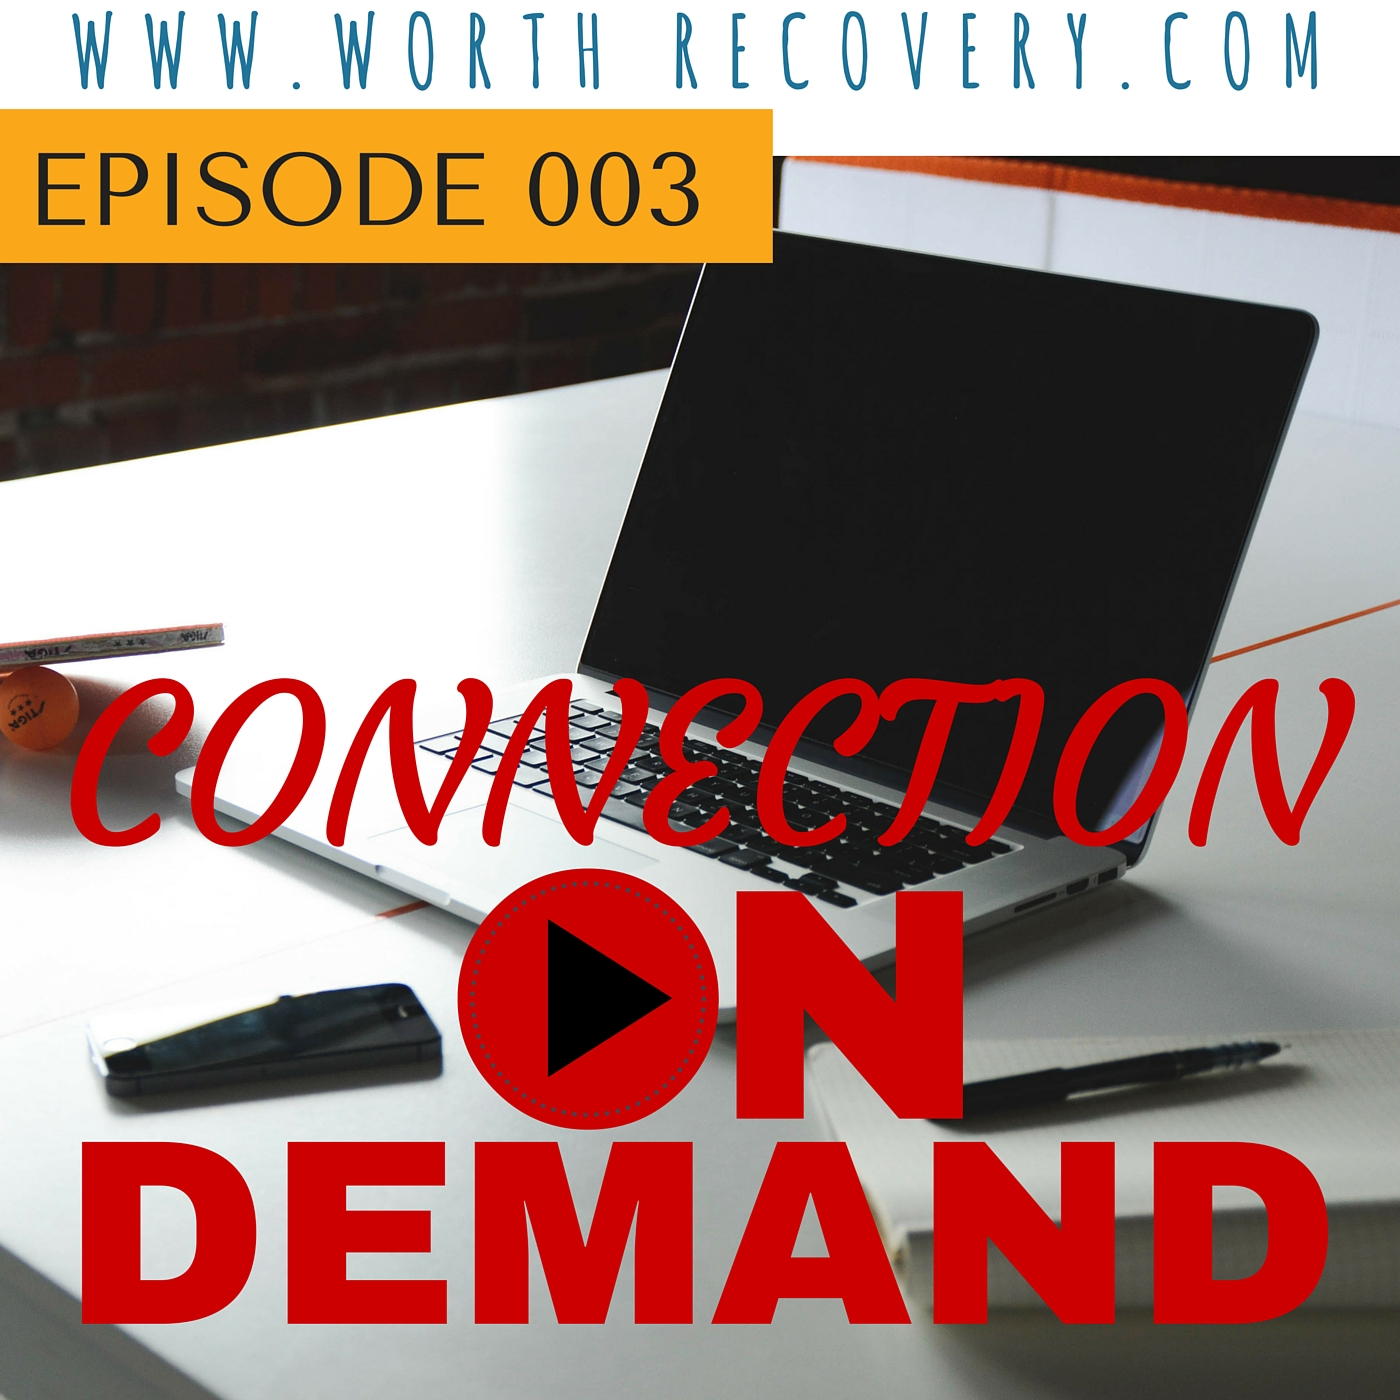 Episode 003: Connection On Demand